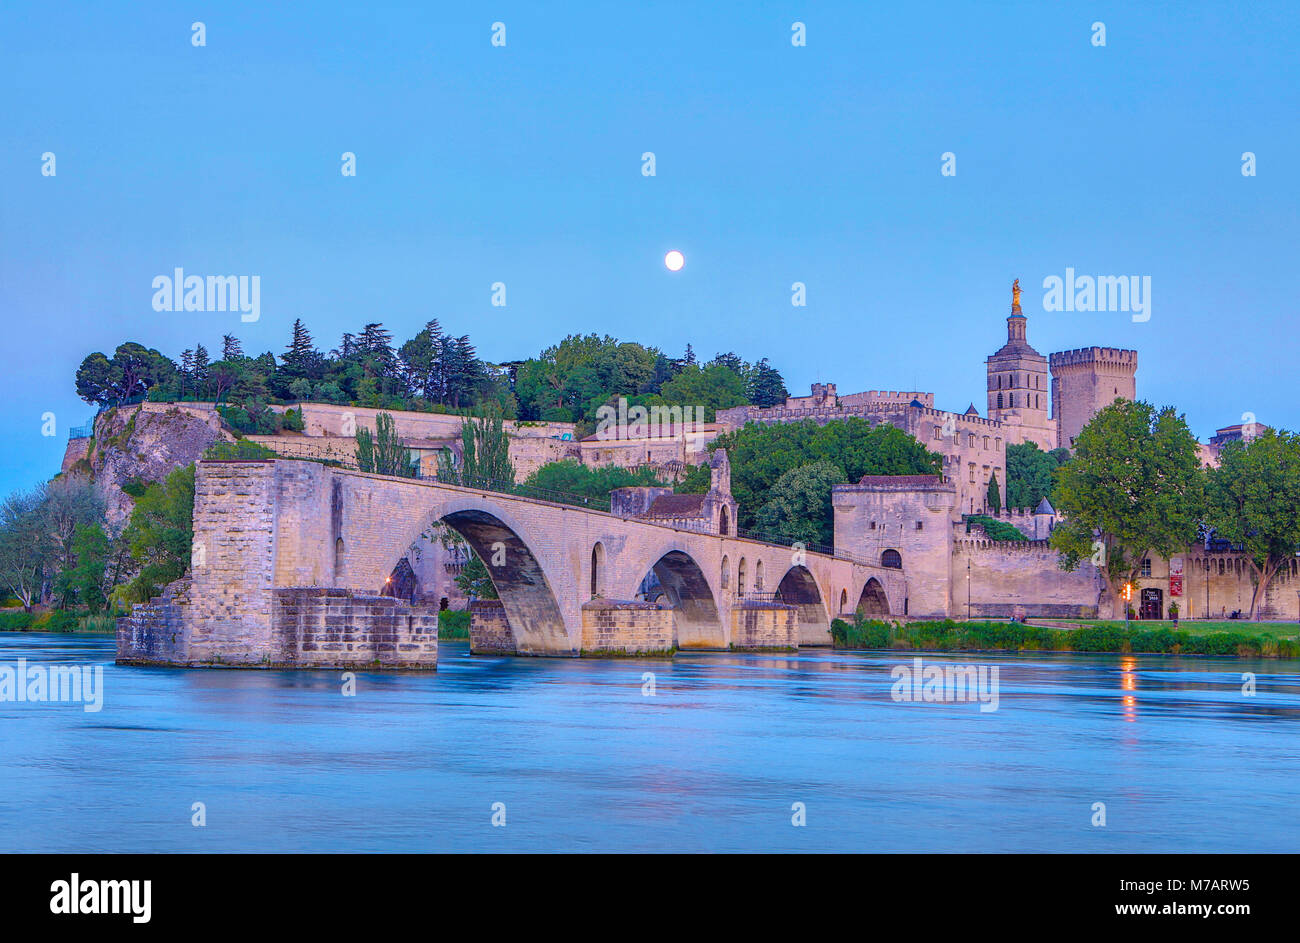 France, Provence region, Avignon city, the Popes Palace ,St. Benezet bridge, Rhone river at moonlight Stock Photo